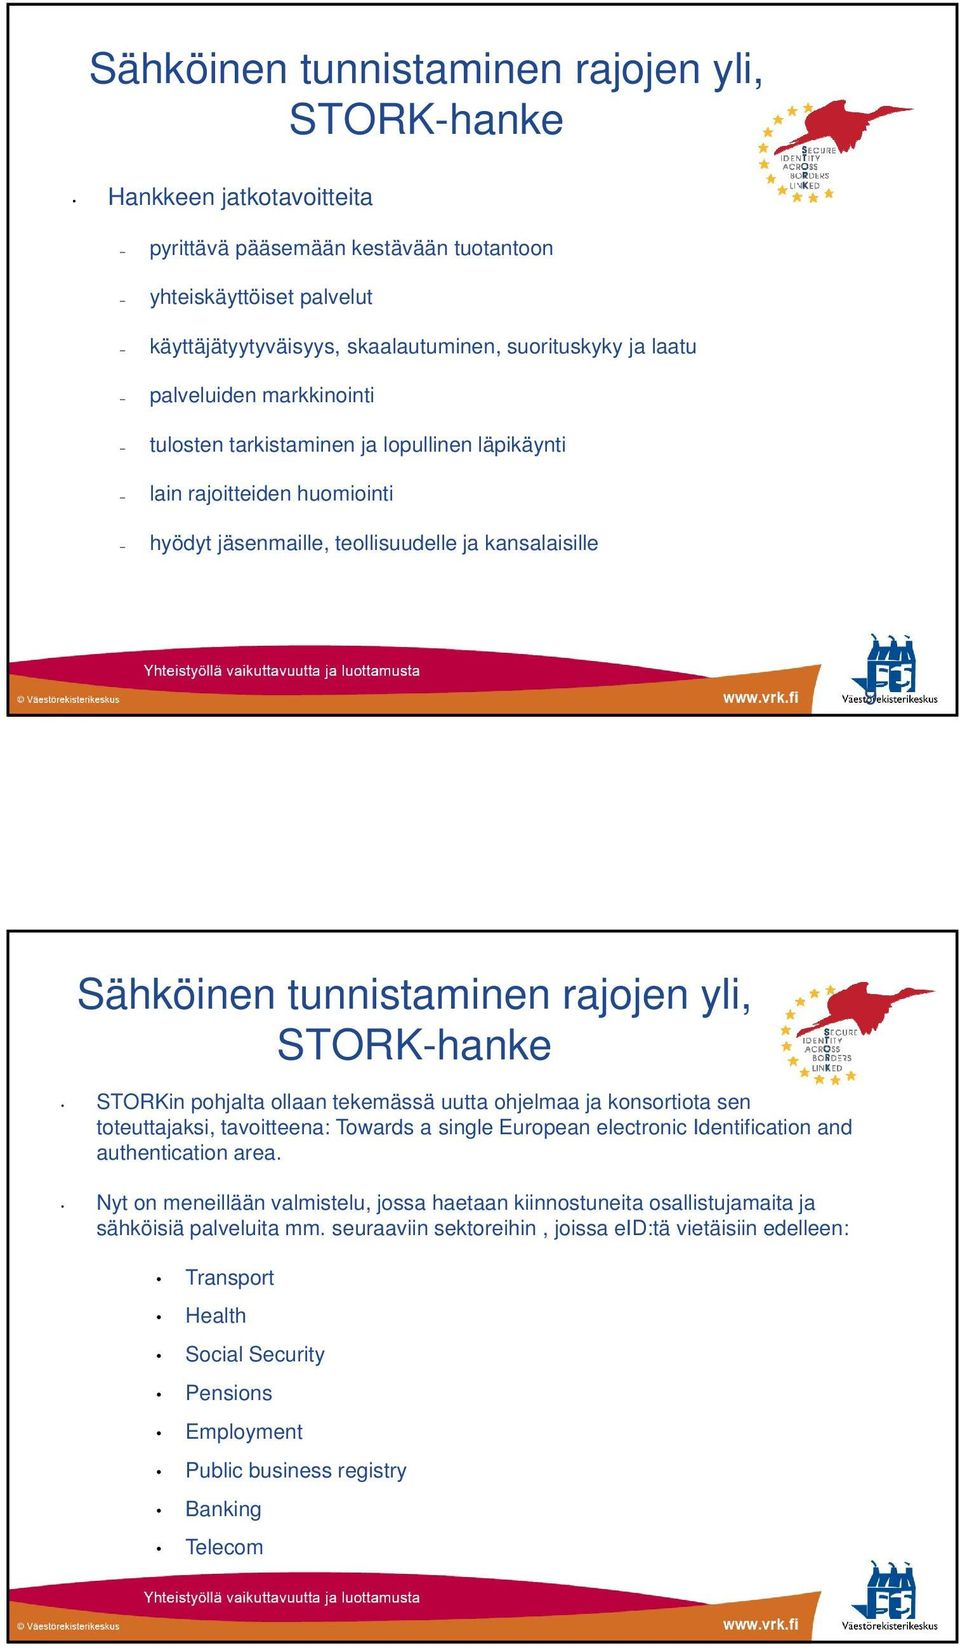 STORKin pohjalta ollaan tekemässä uutta ohjelmaa ja konsortiota sen toteuttajaksi, tavoitteena: Towards a single European electronic Identification and authentication area.